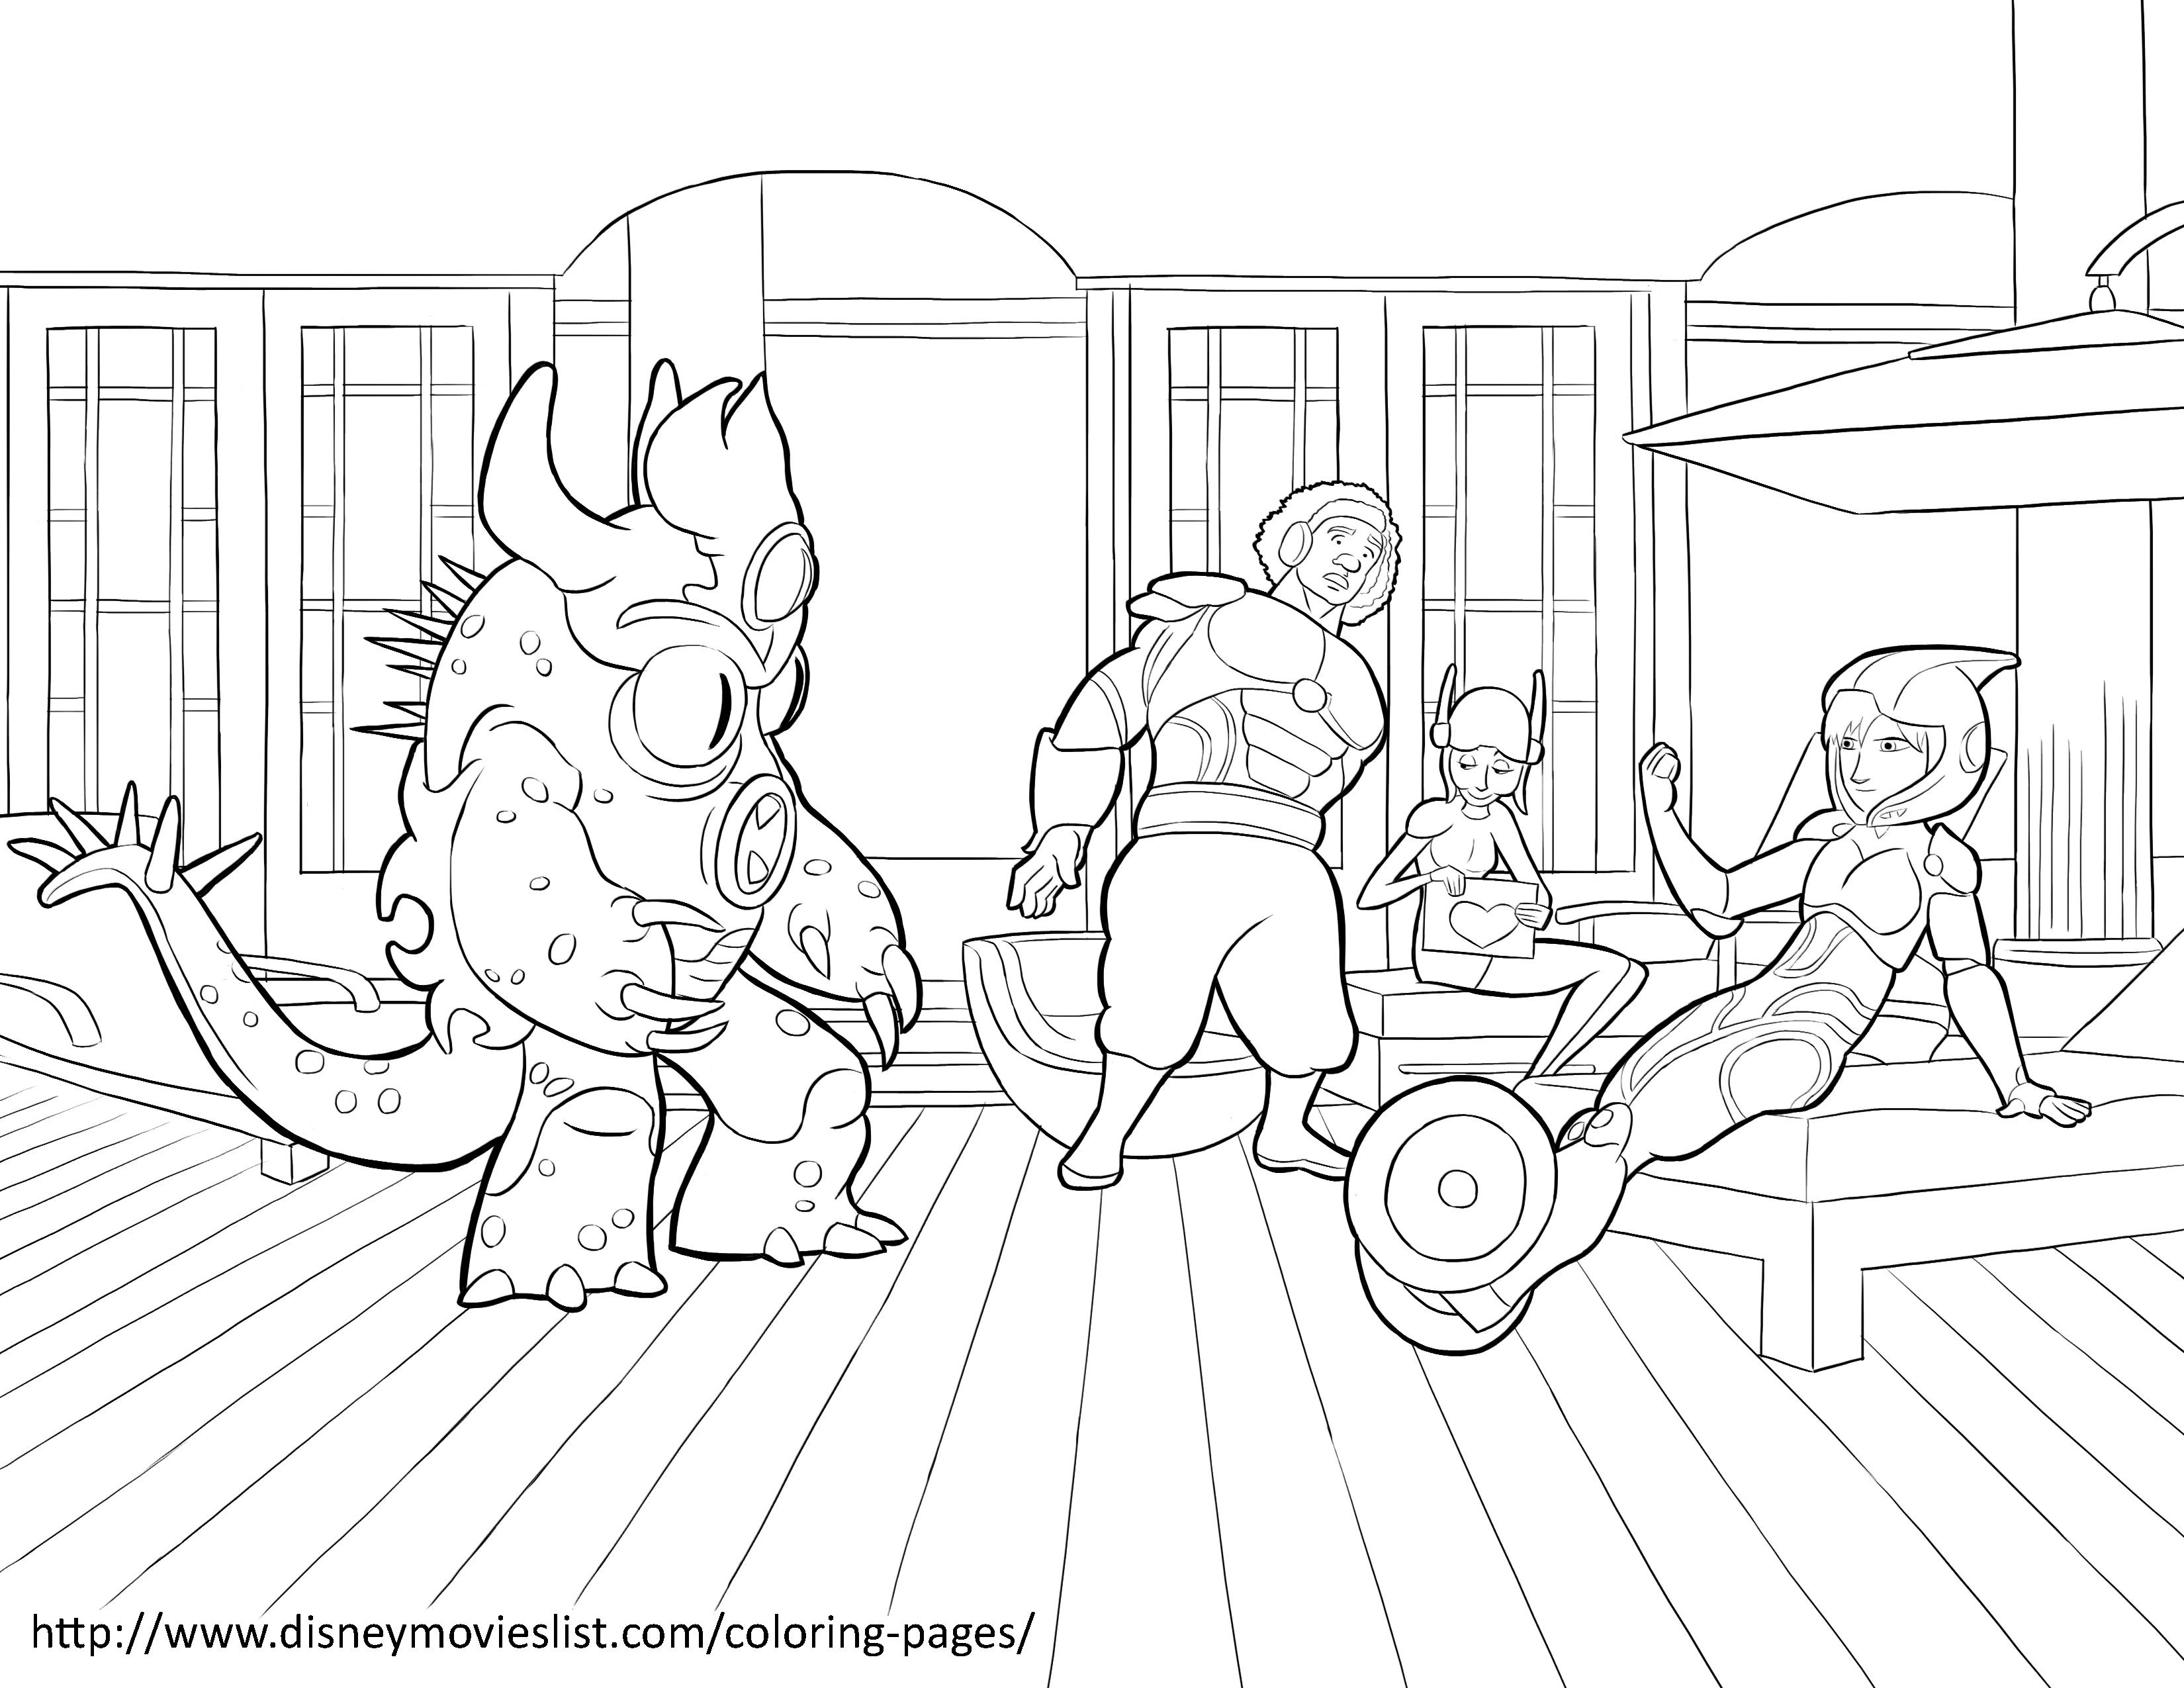 Big Hero 6 Coloring Pages Coloring Home